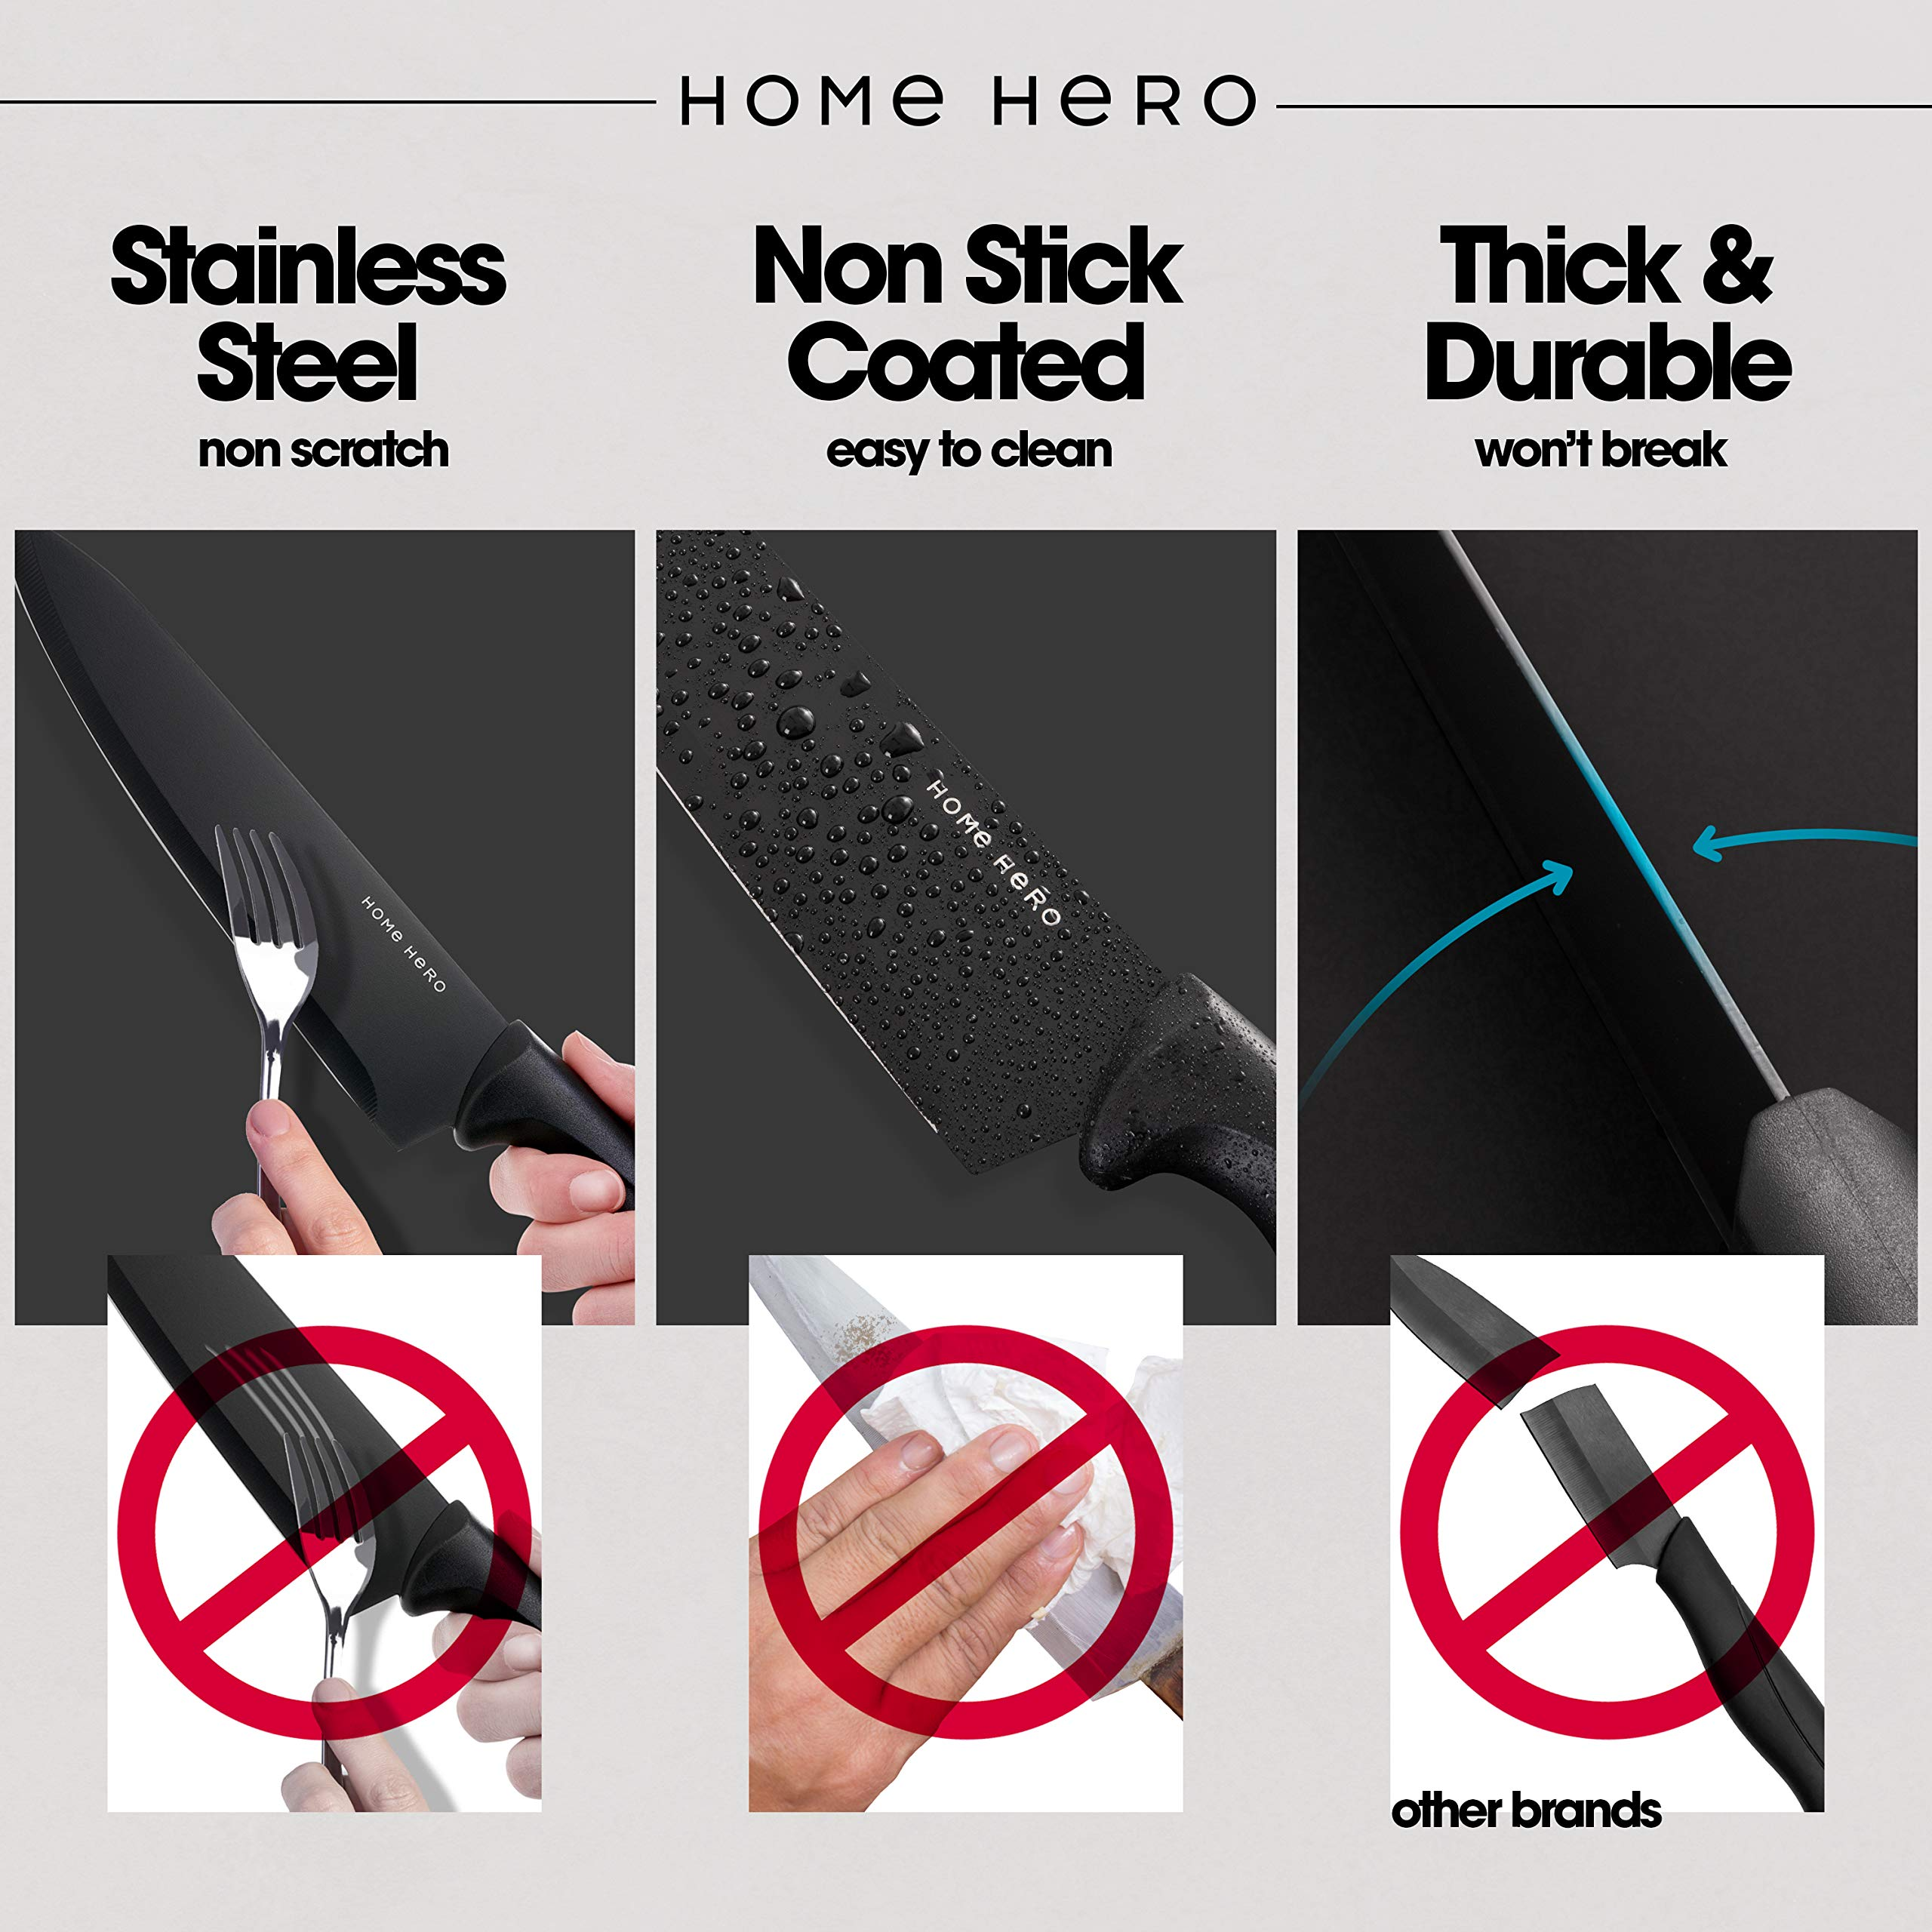 Chef Knife Set Knives Kitchen Set - Kitchen Knives Set Kitchen Knife Set with Stand - Plus Professional Knife Sharpener - 7 Piece Stainless Steel Cutlery Knives Set by HomeHero by HomeHero (Image #4)